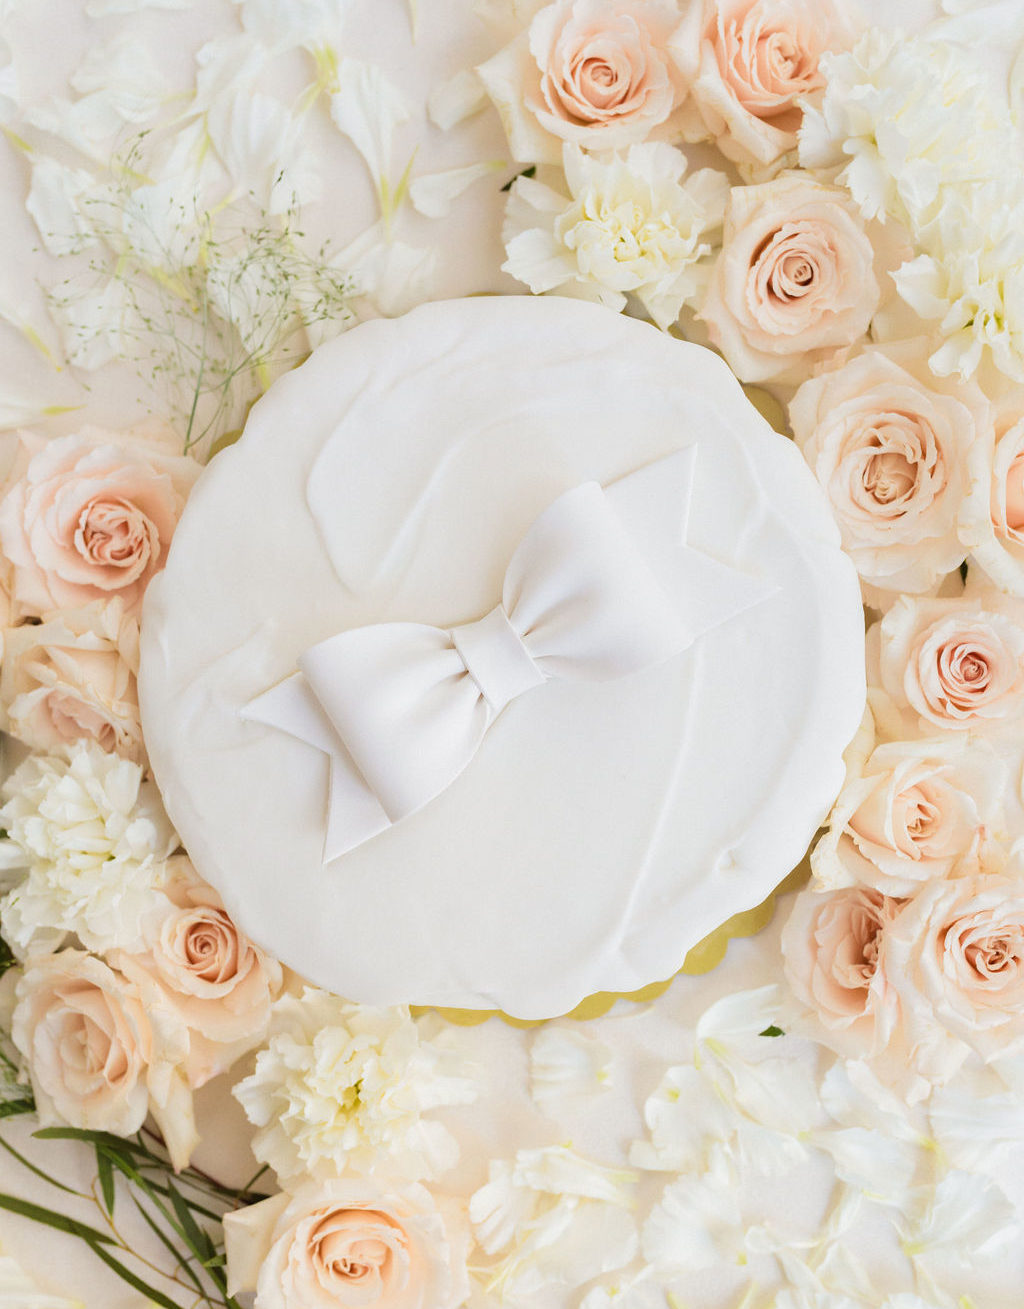 Bow Wedding Cake Blush Roses Elizabeth Burgi Photography